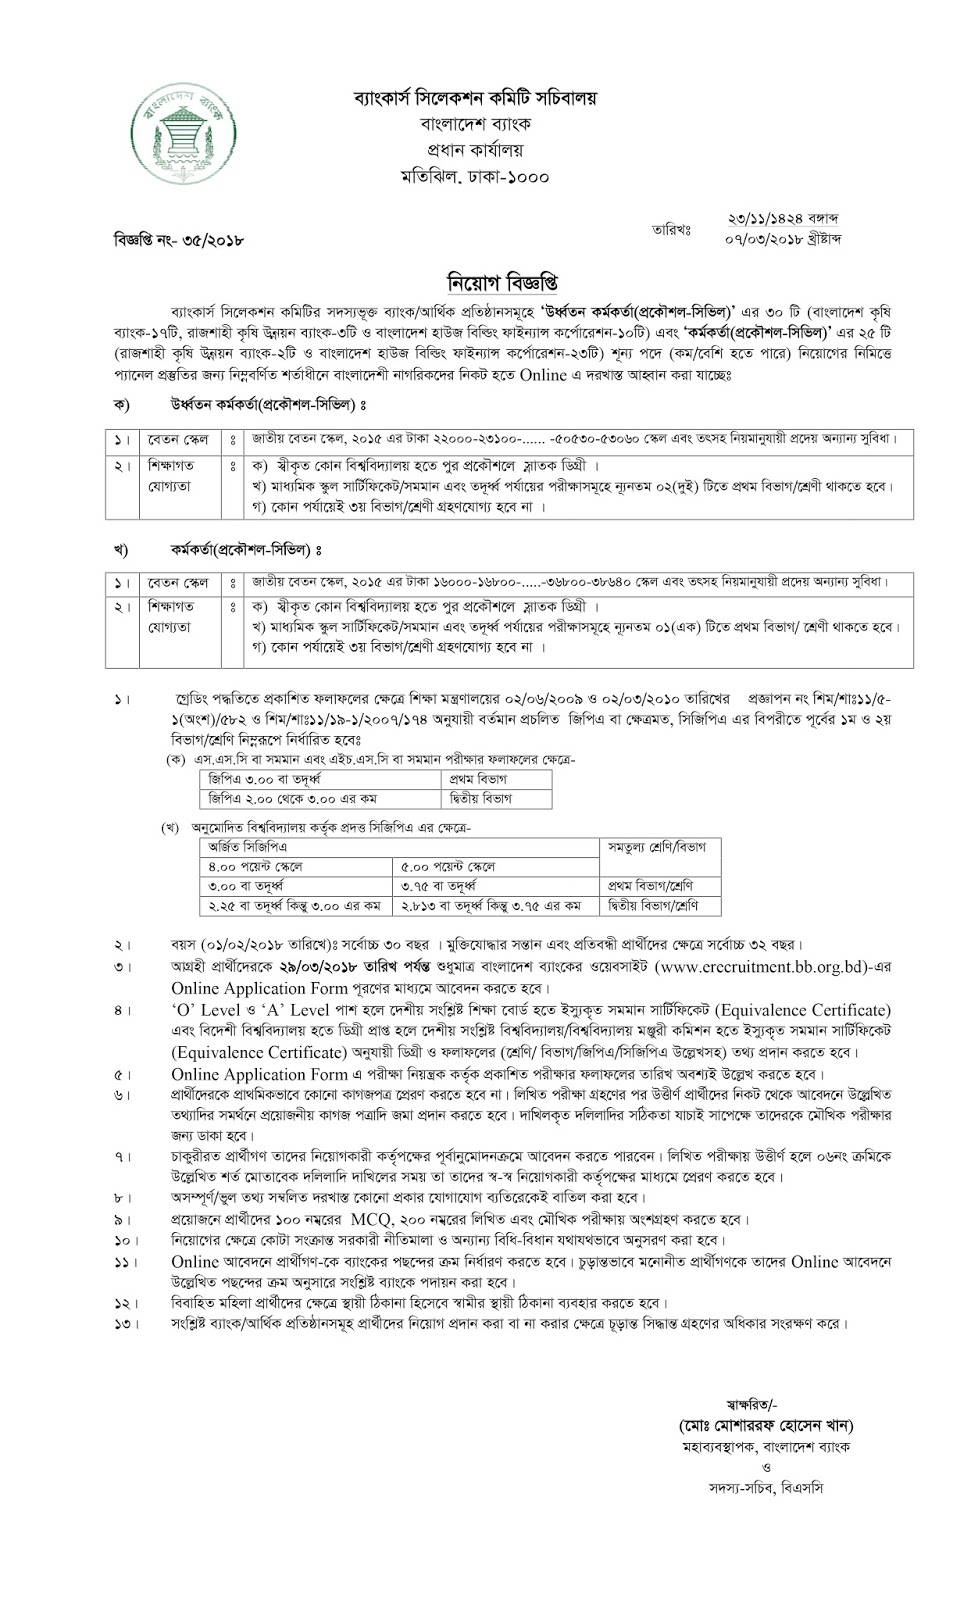 BHBFC Senior Officer (Engineer-Civil) Job Circular 2018